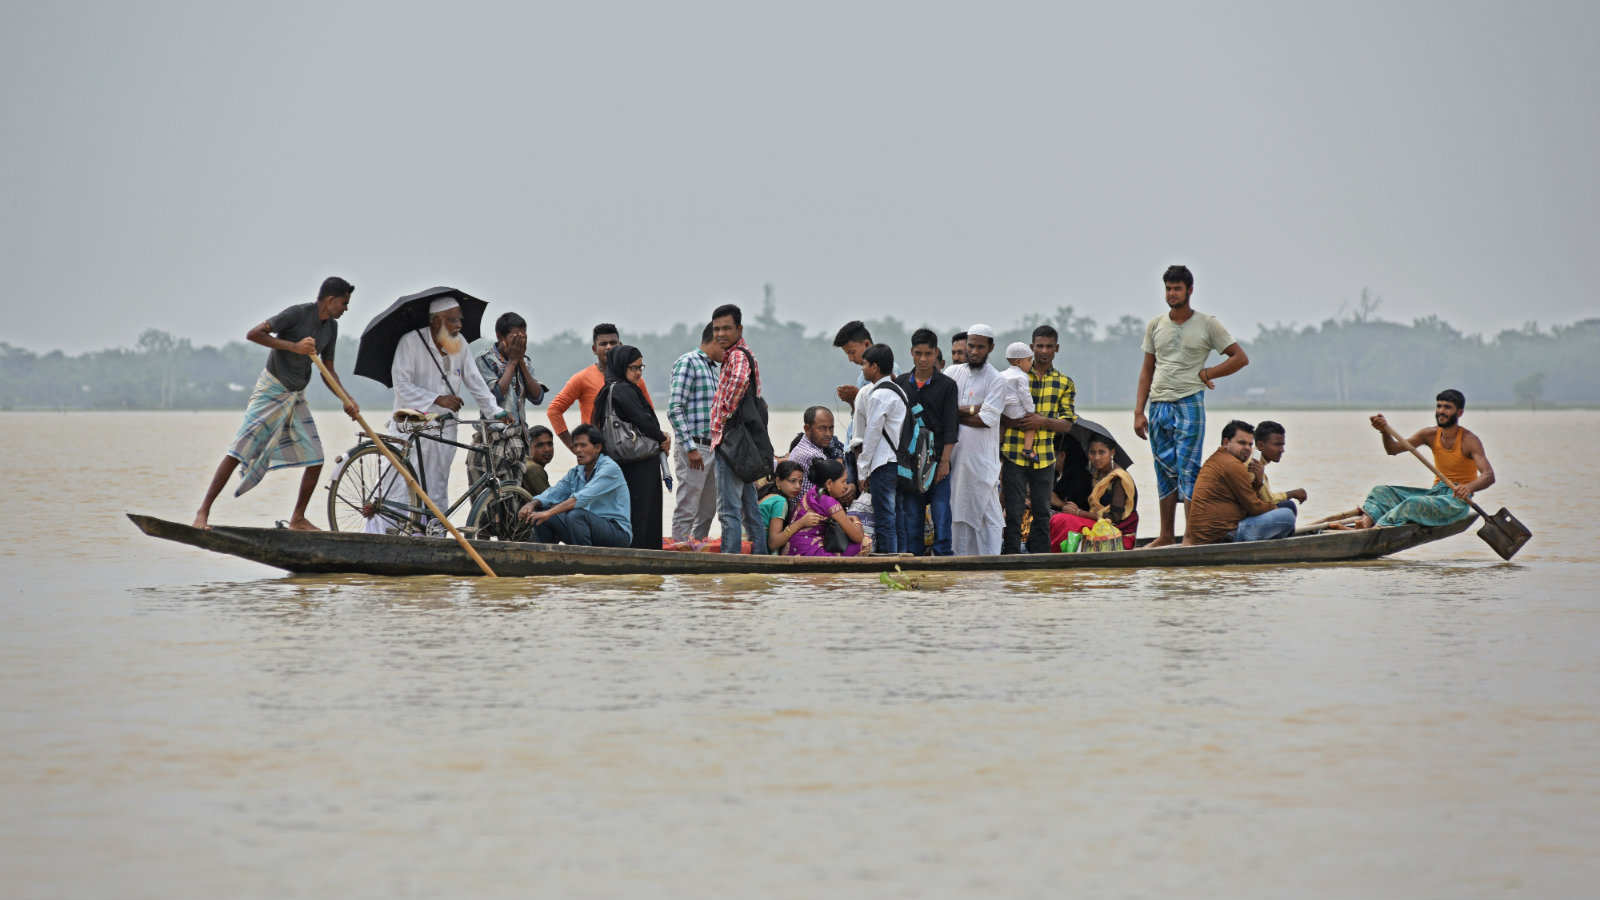 Flood affected villagers are transported in a boat to a safer place in Hojai district, in the northeastern state of Assam, India, June 17, 2018.